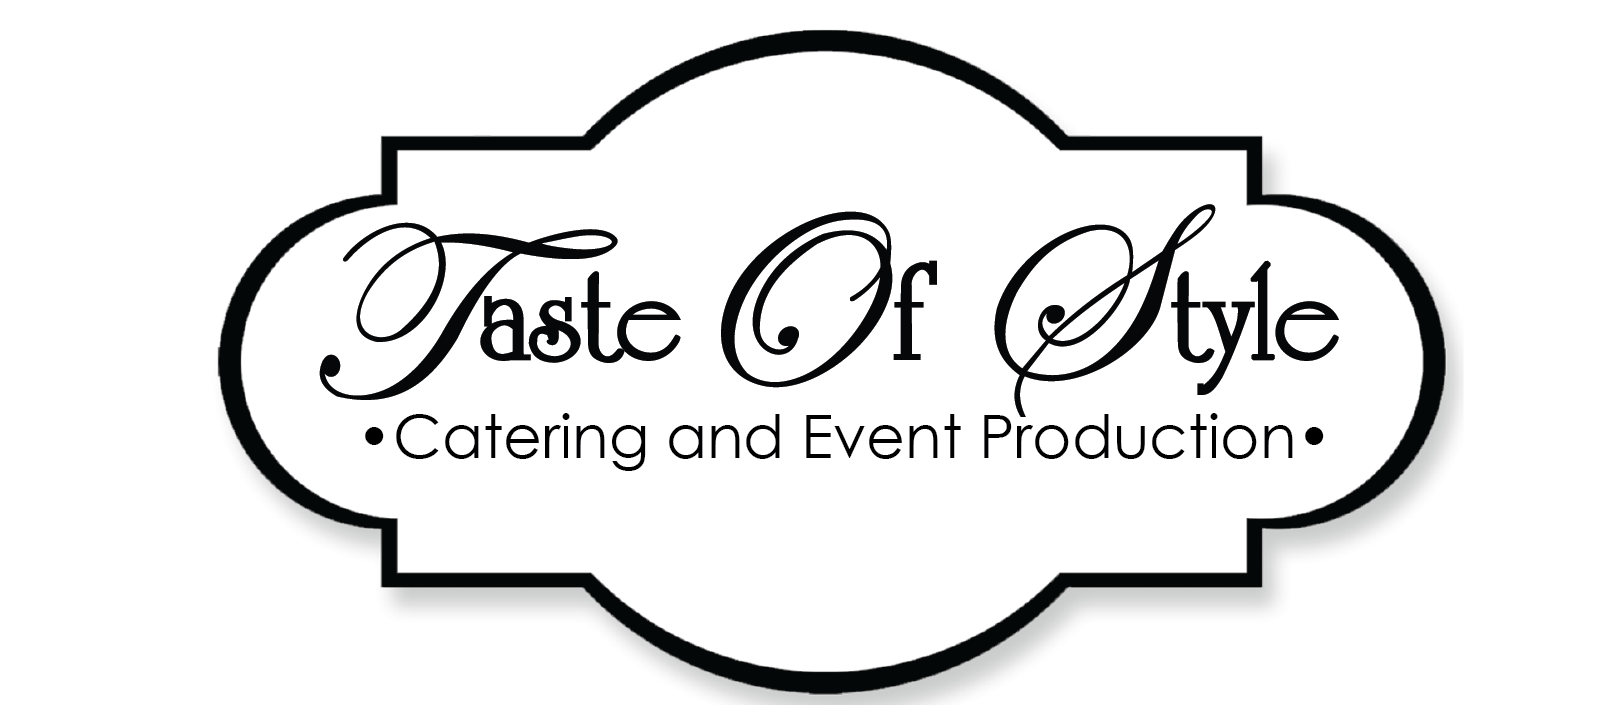 Taste Of Style Catering & Event Production